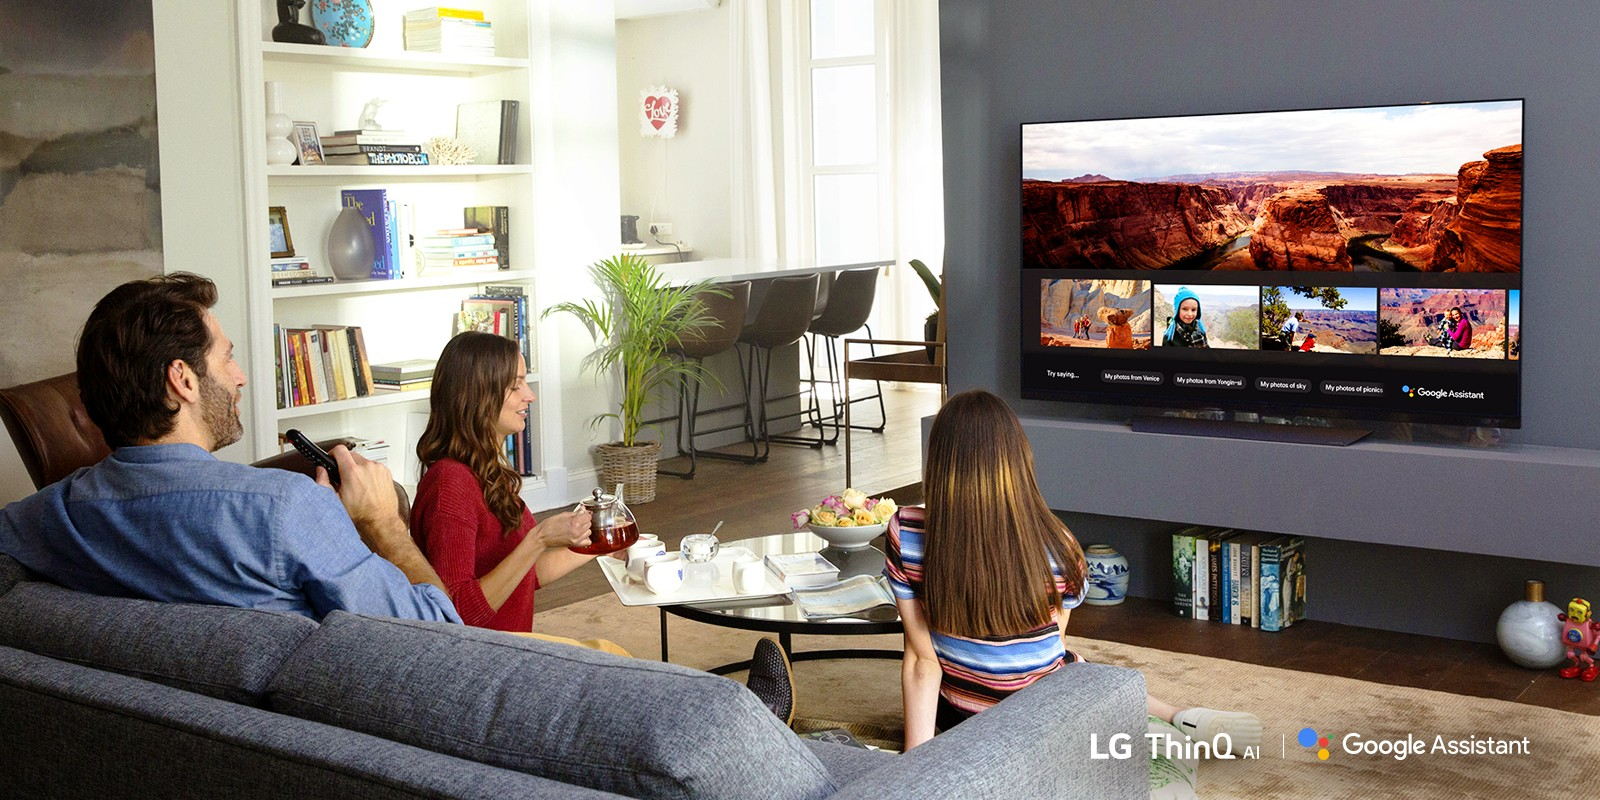 Lg Launches The Google Assistant On 2018 Ai Enabled Tvs Lg Newsroom